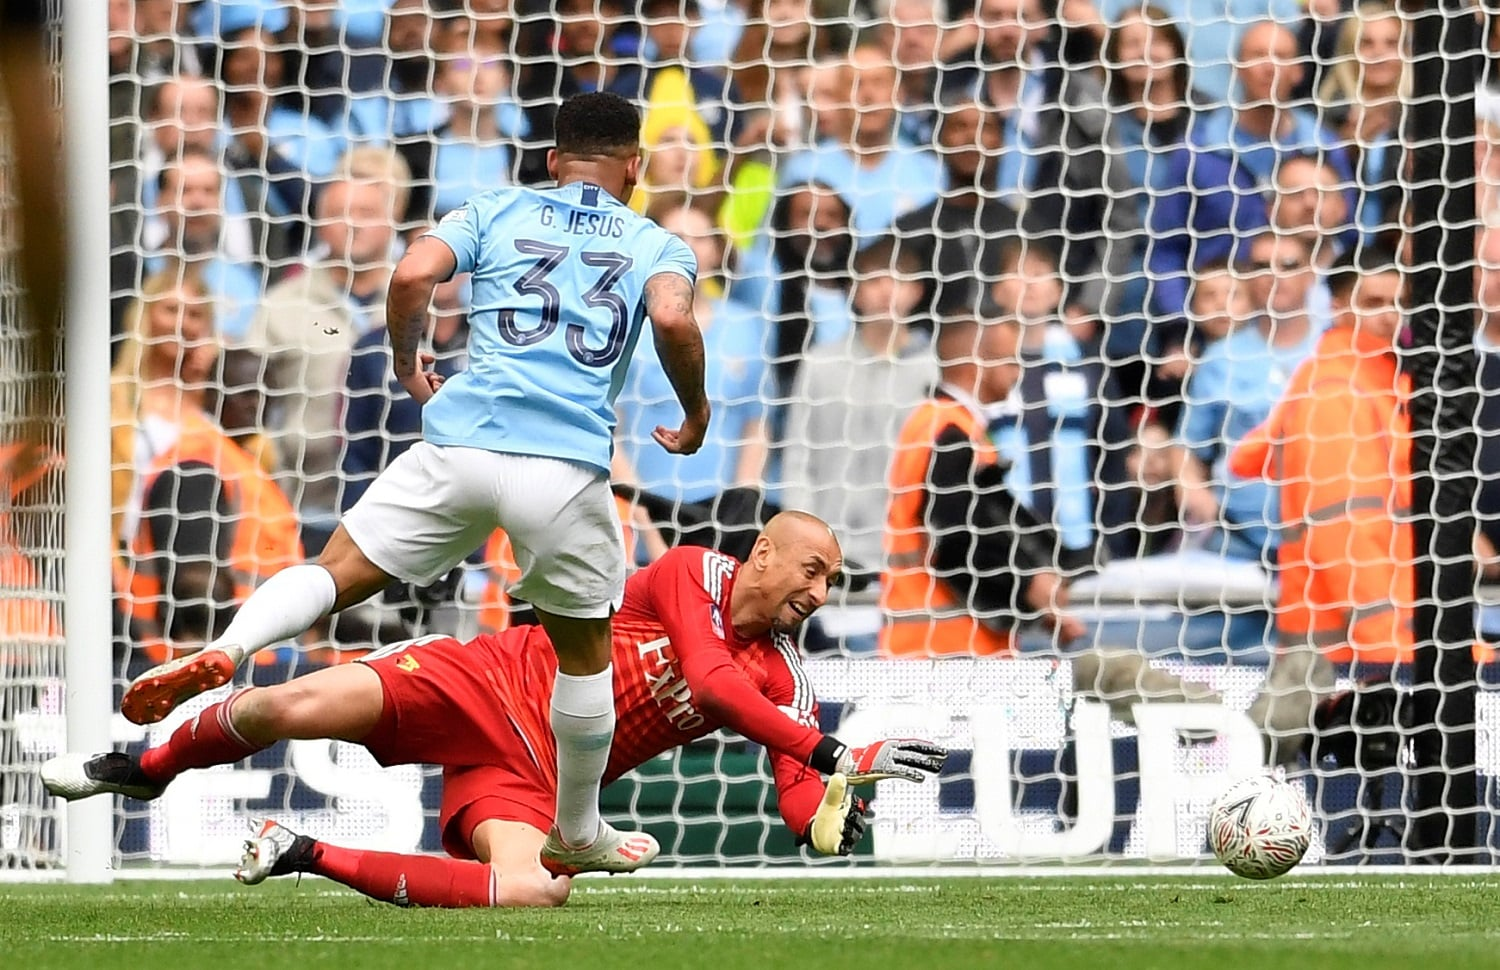 Soccer Football - FA Cup Final - Manchester City v Watford - Wembley Stadium, London, Britain - May 18, 2019 Manchester City's Gabriel Jesus scores their fourth goal REUTERS/Toby Melville